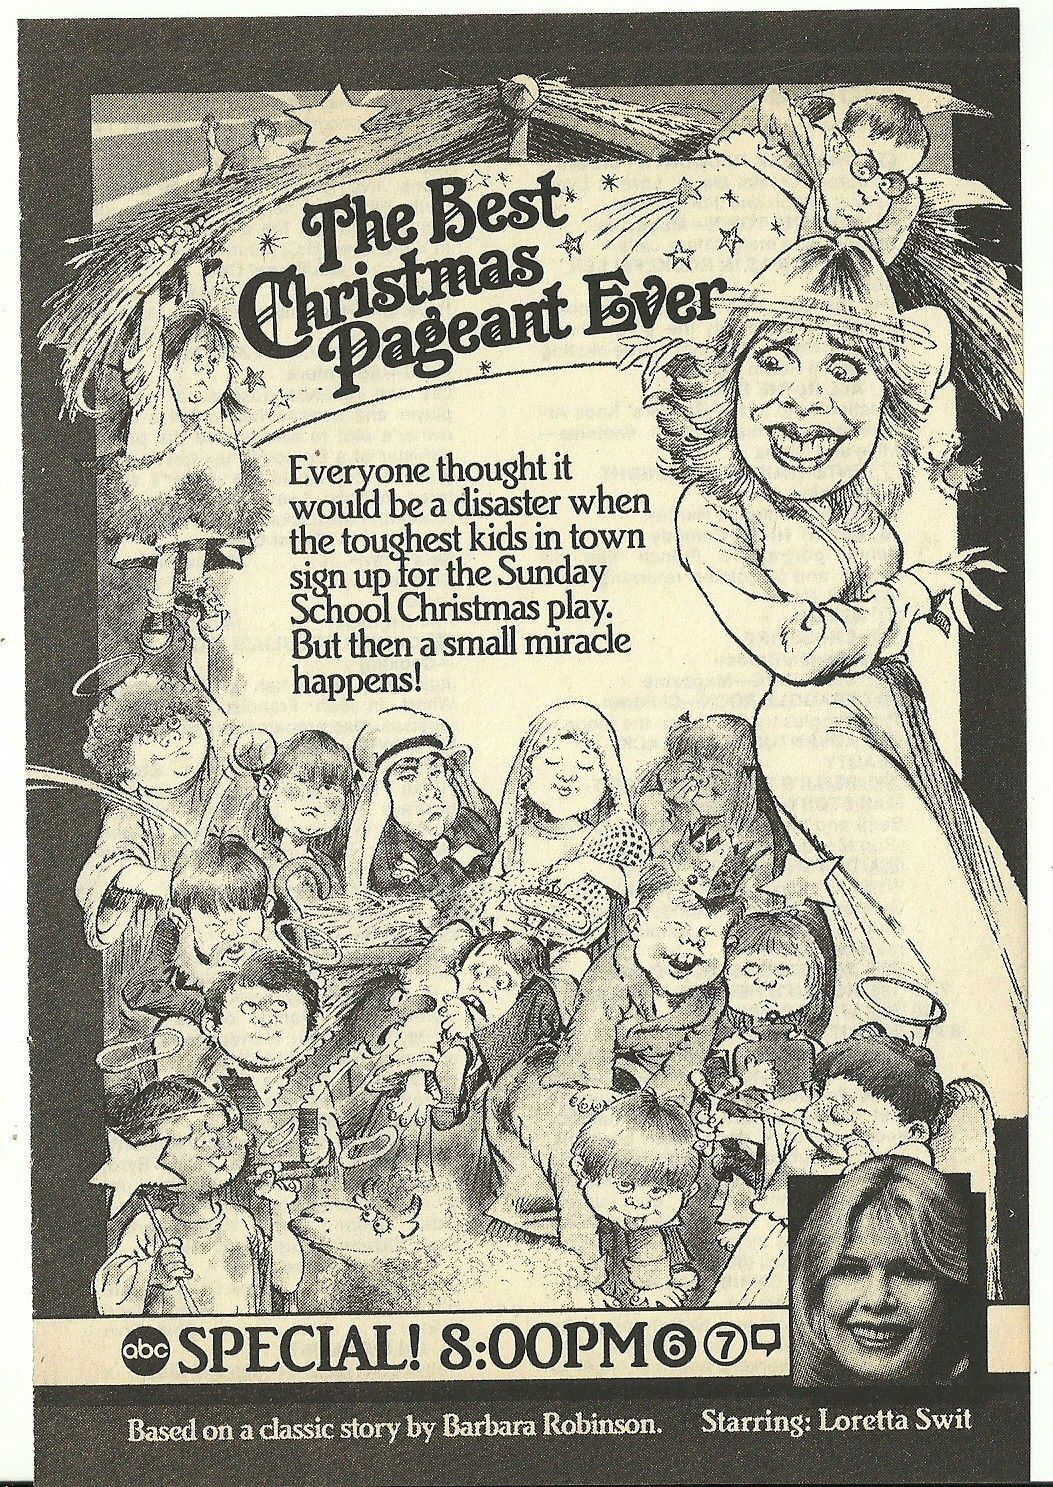 The Best Christmas Pageant Ever 5 X 7 Magazine Ad